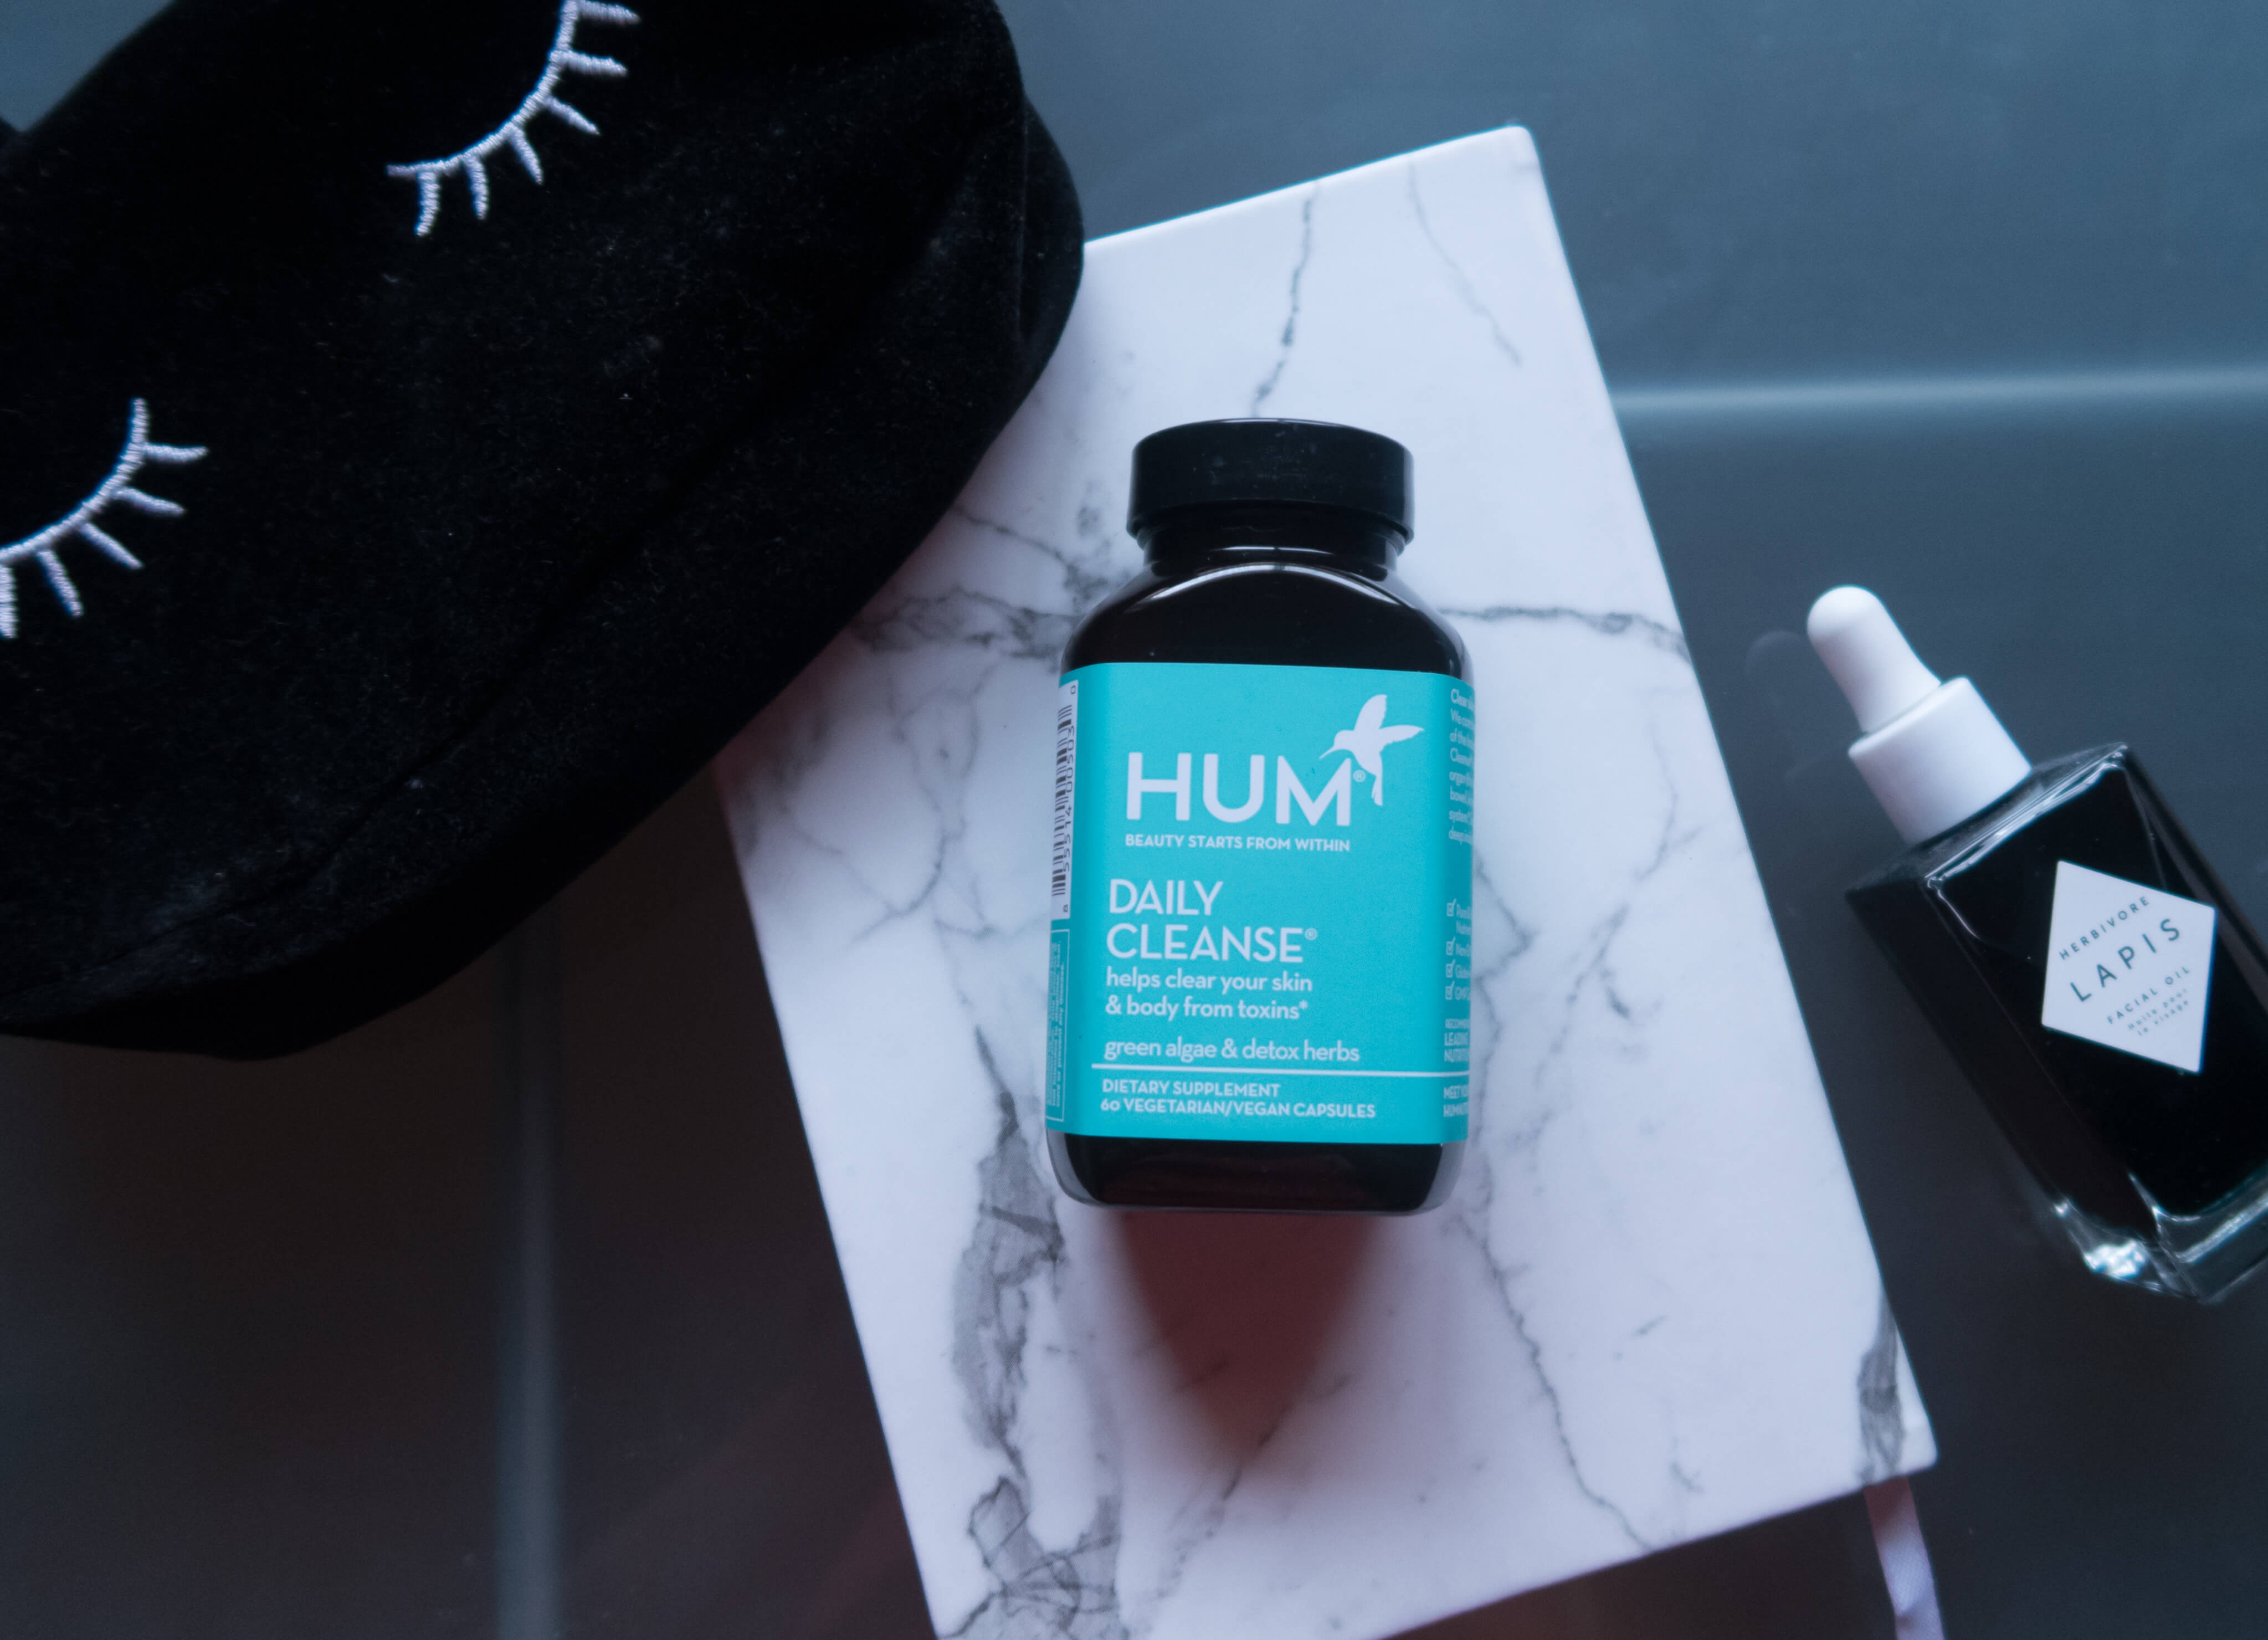 @jacfruits's cover photo for 'Hum Nutrition Daily Cleanse Made My Skin Glow! Beauty Supplements'